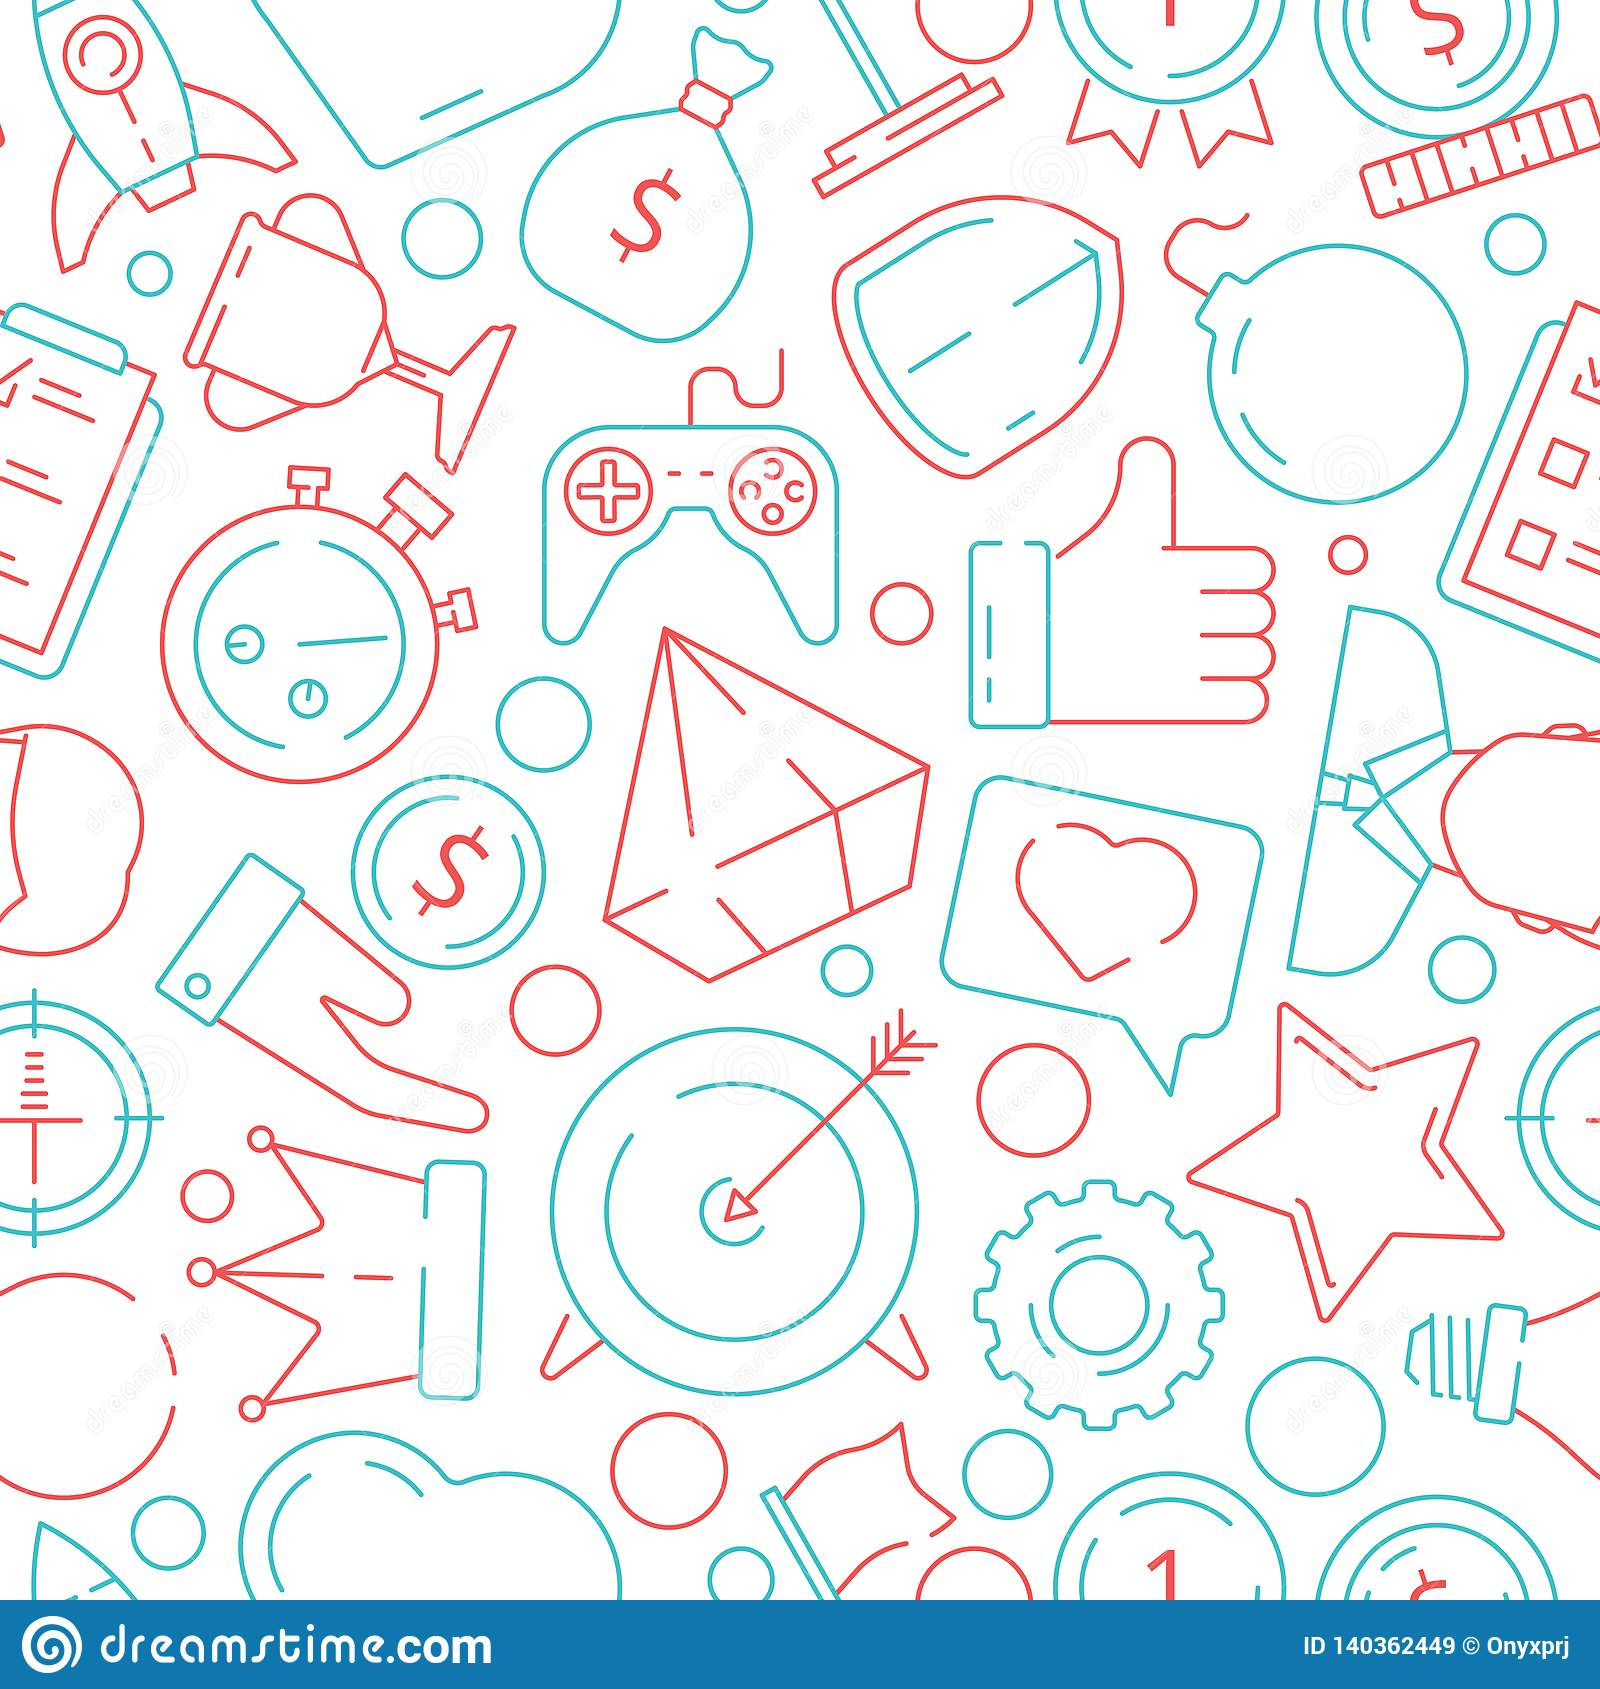 Game pattern. Gamification business symbols achivement rulers motivation challenge vector seamless background